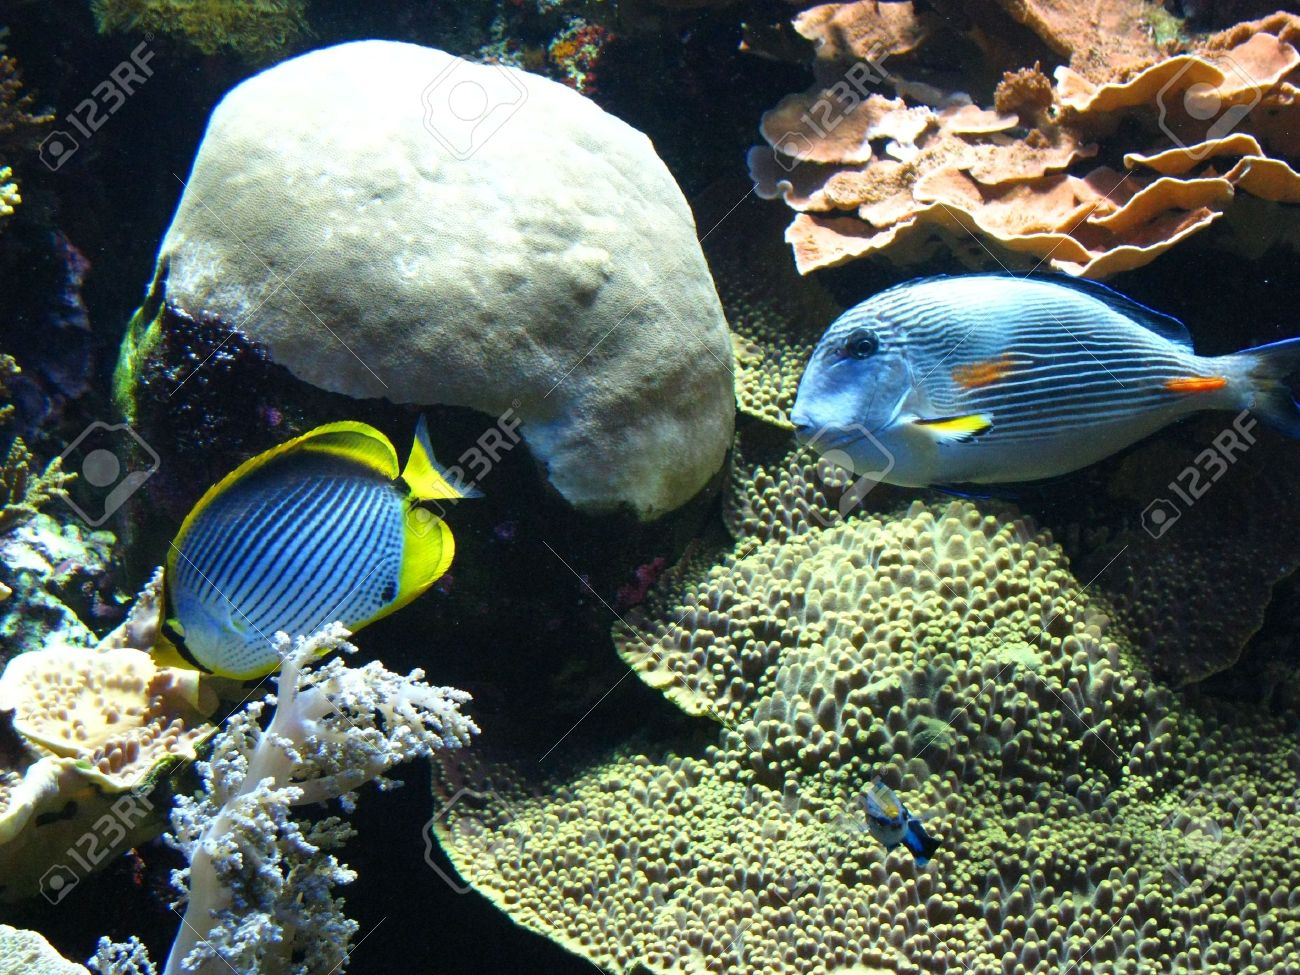 Different types of beautiful fish, molluscs, crustaceans and many kinds of algae, corals in the aquarium of the oceanographic museum in Monte Carlo. Stock Photo - 6392111